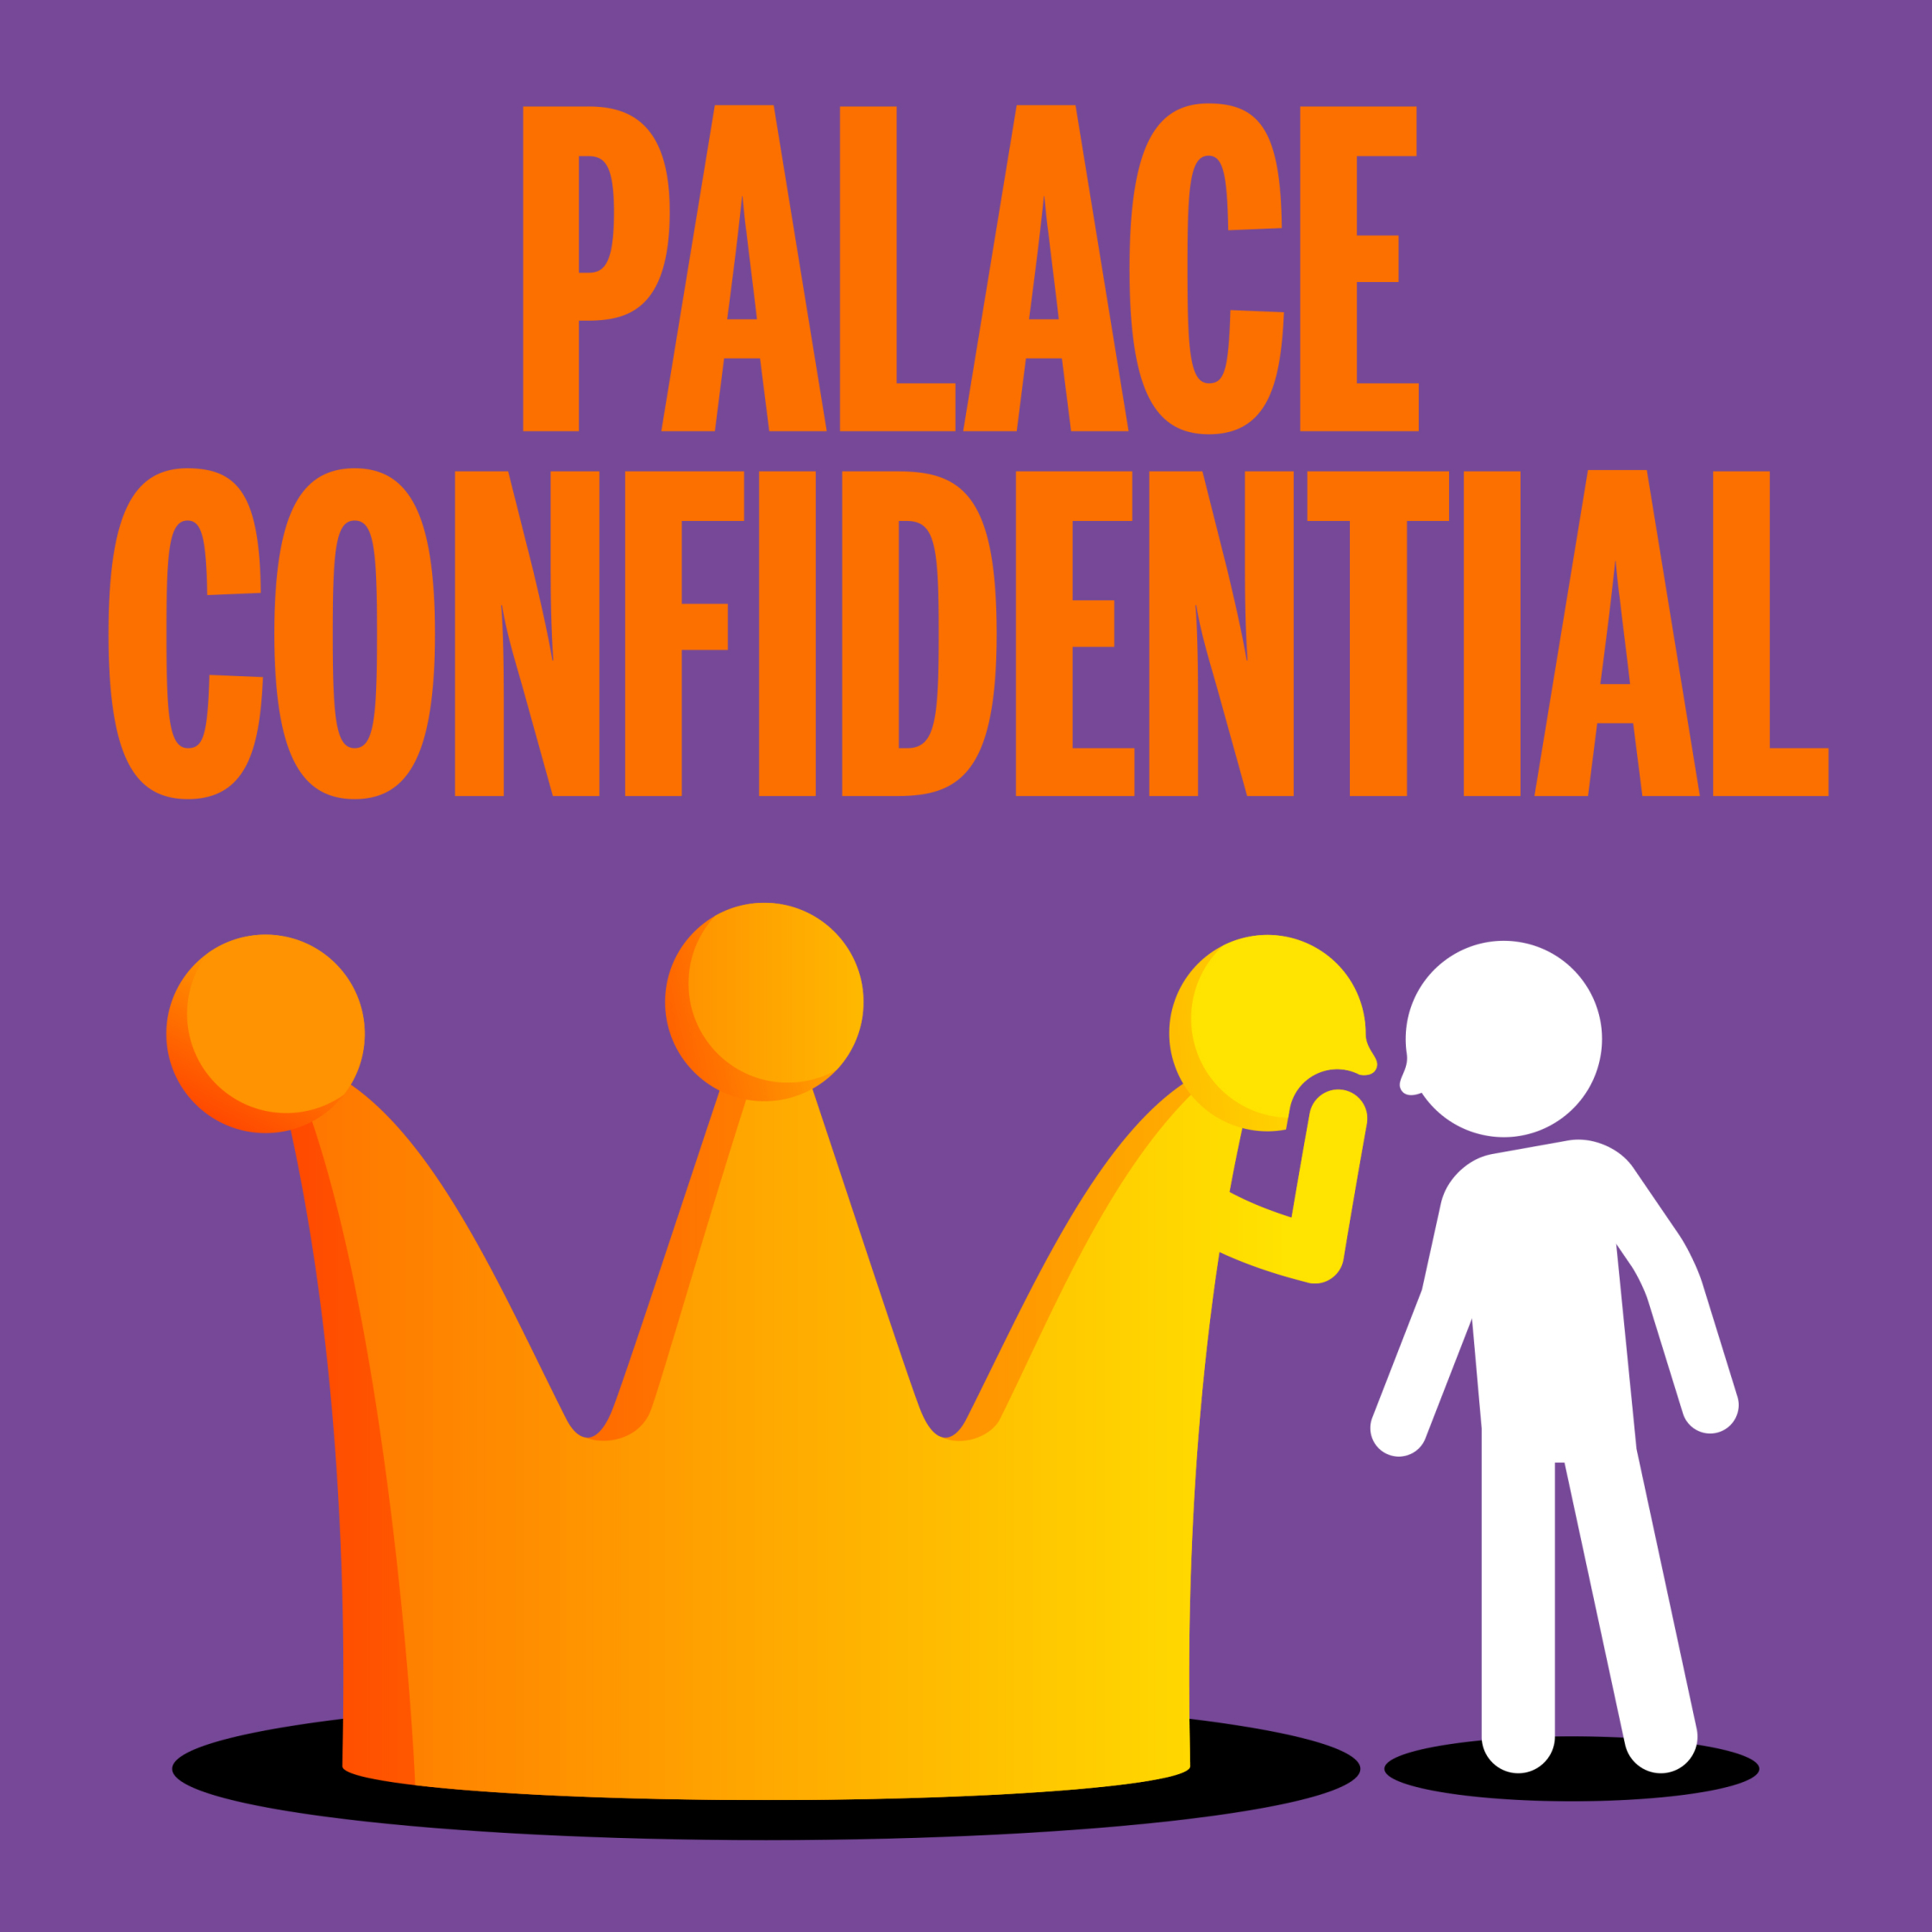 MailPlus-Podcast-Palace-Confidential.jpg